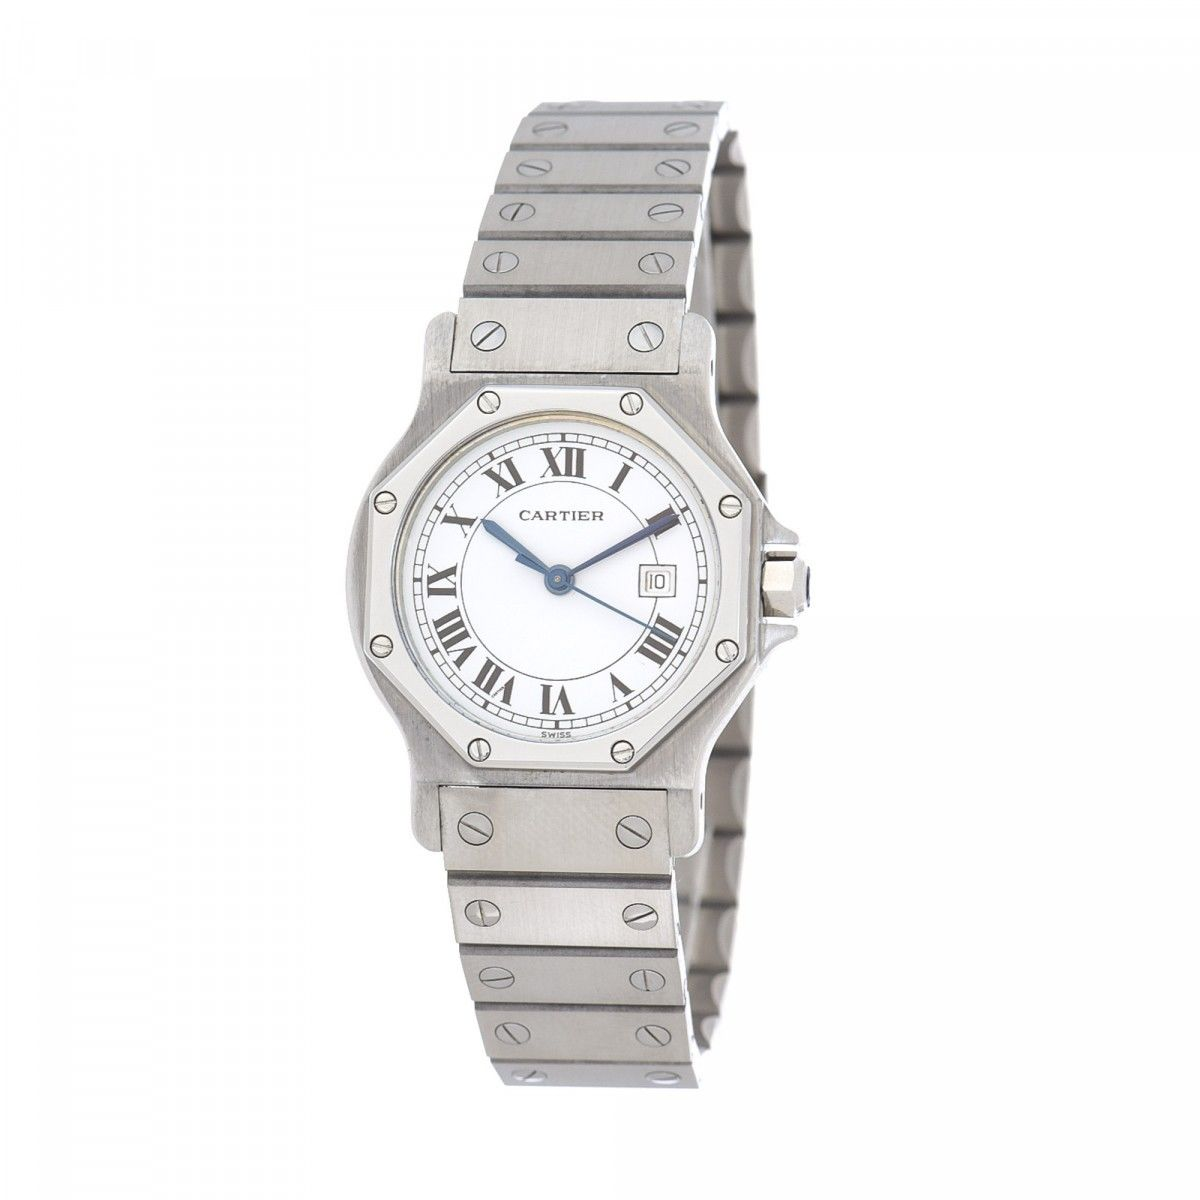 quality replicas hot mechanical buy aaa watch luxury day watches brand stainless to ladies sell product automatic steel just